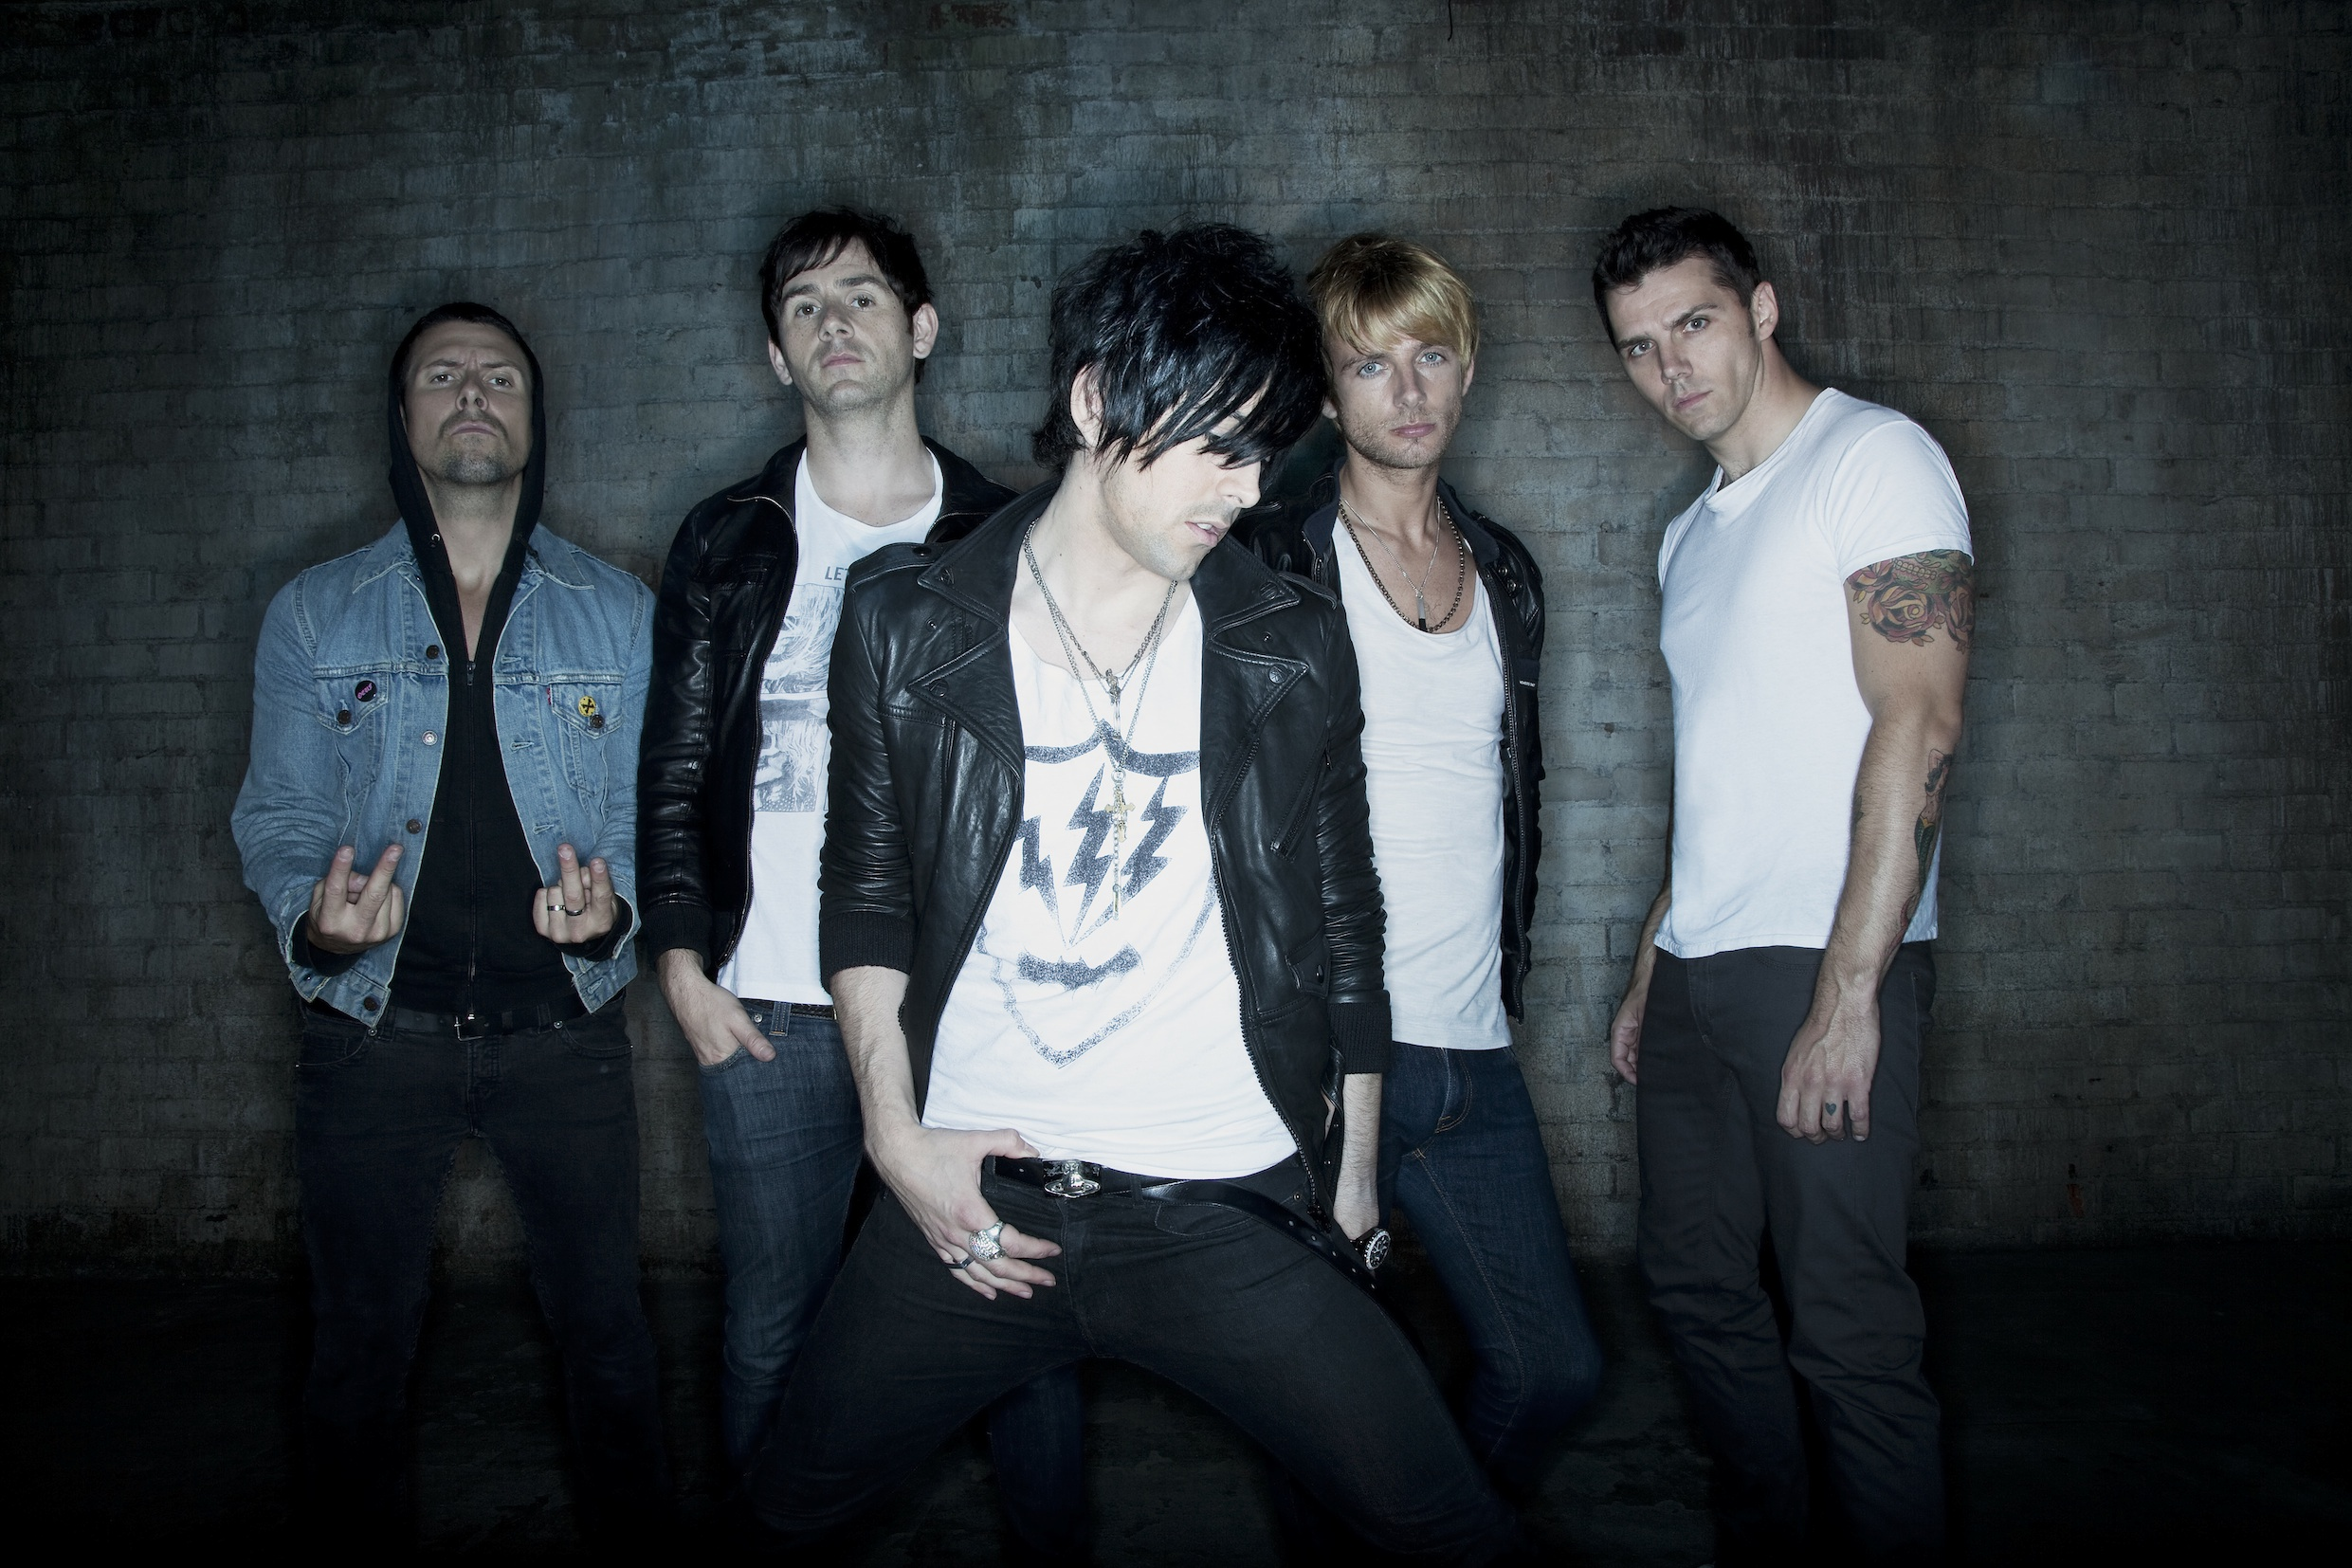 Lostprophets announce Soundwave 2012 sidewaves